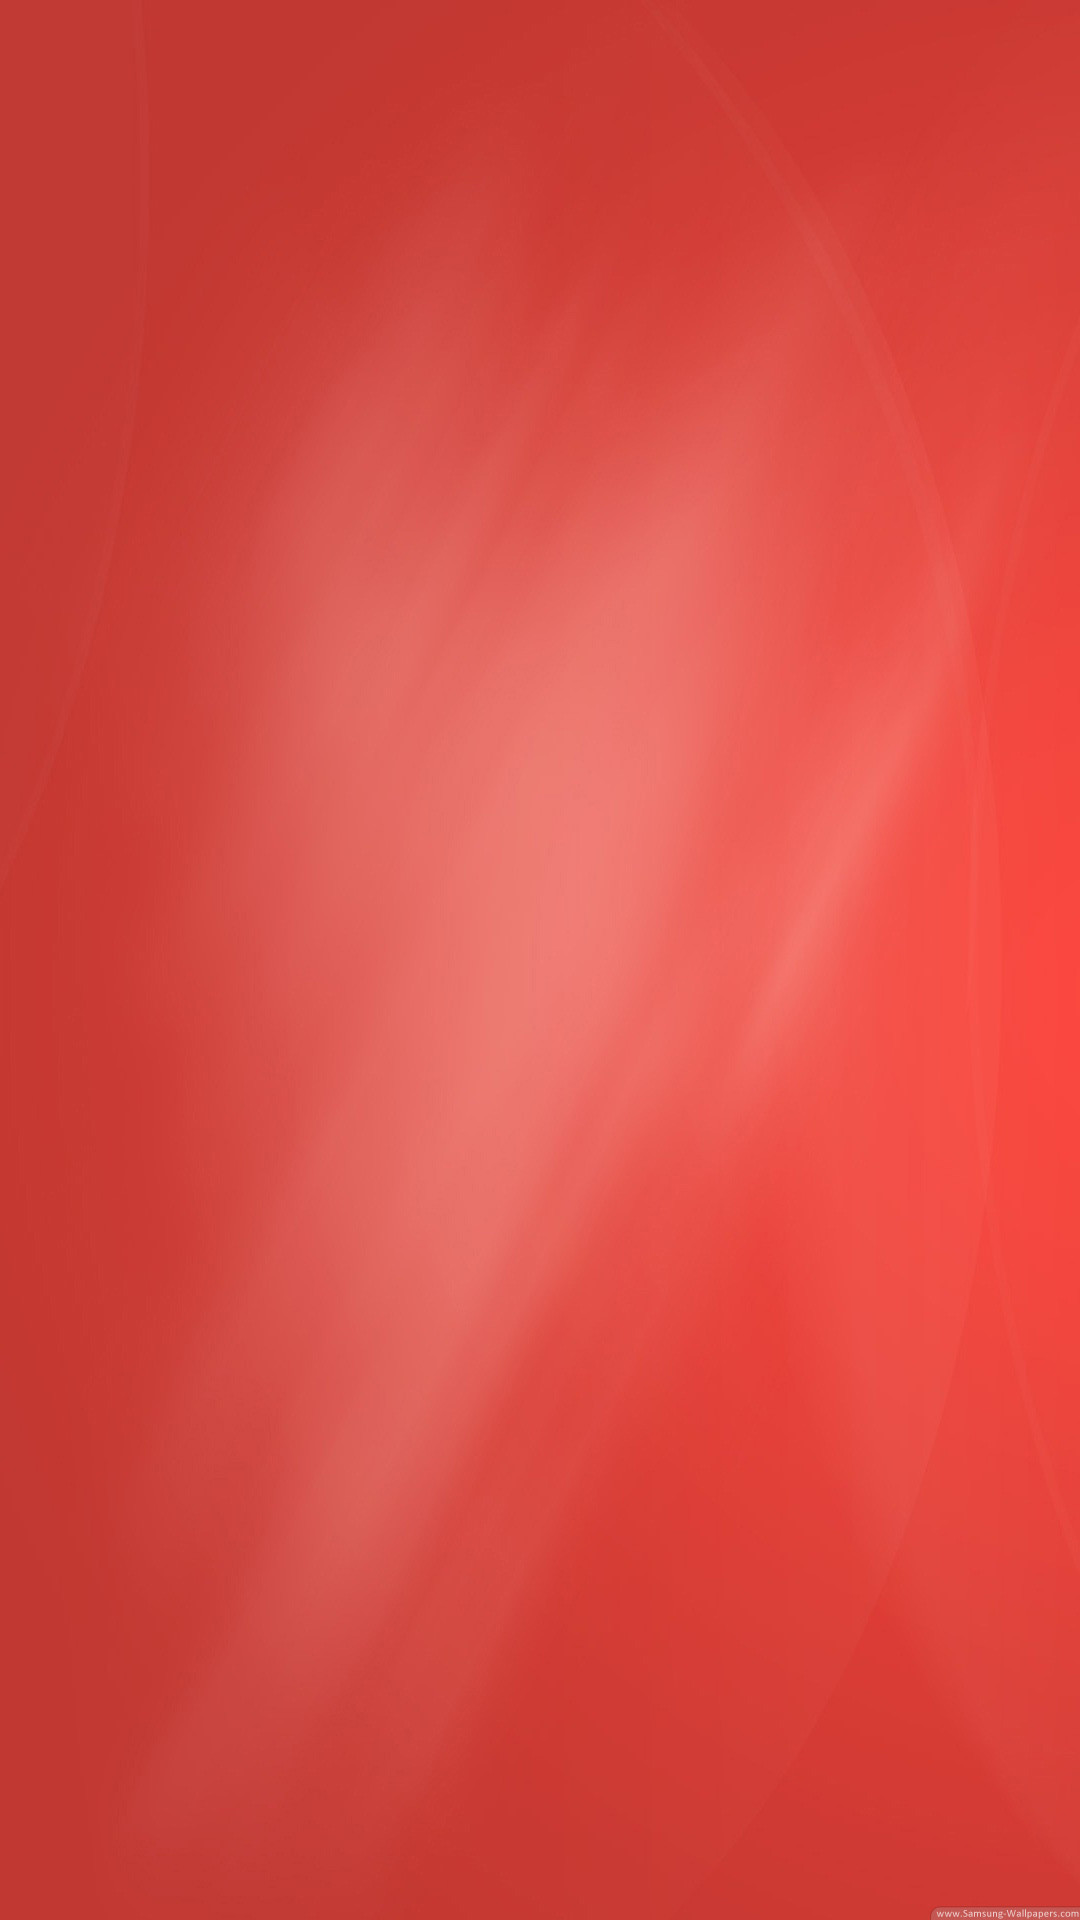 Red Iphone 6 Plus Wallpaper 96 Images